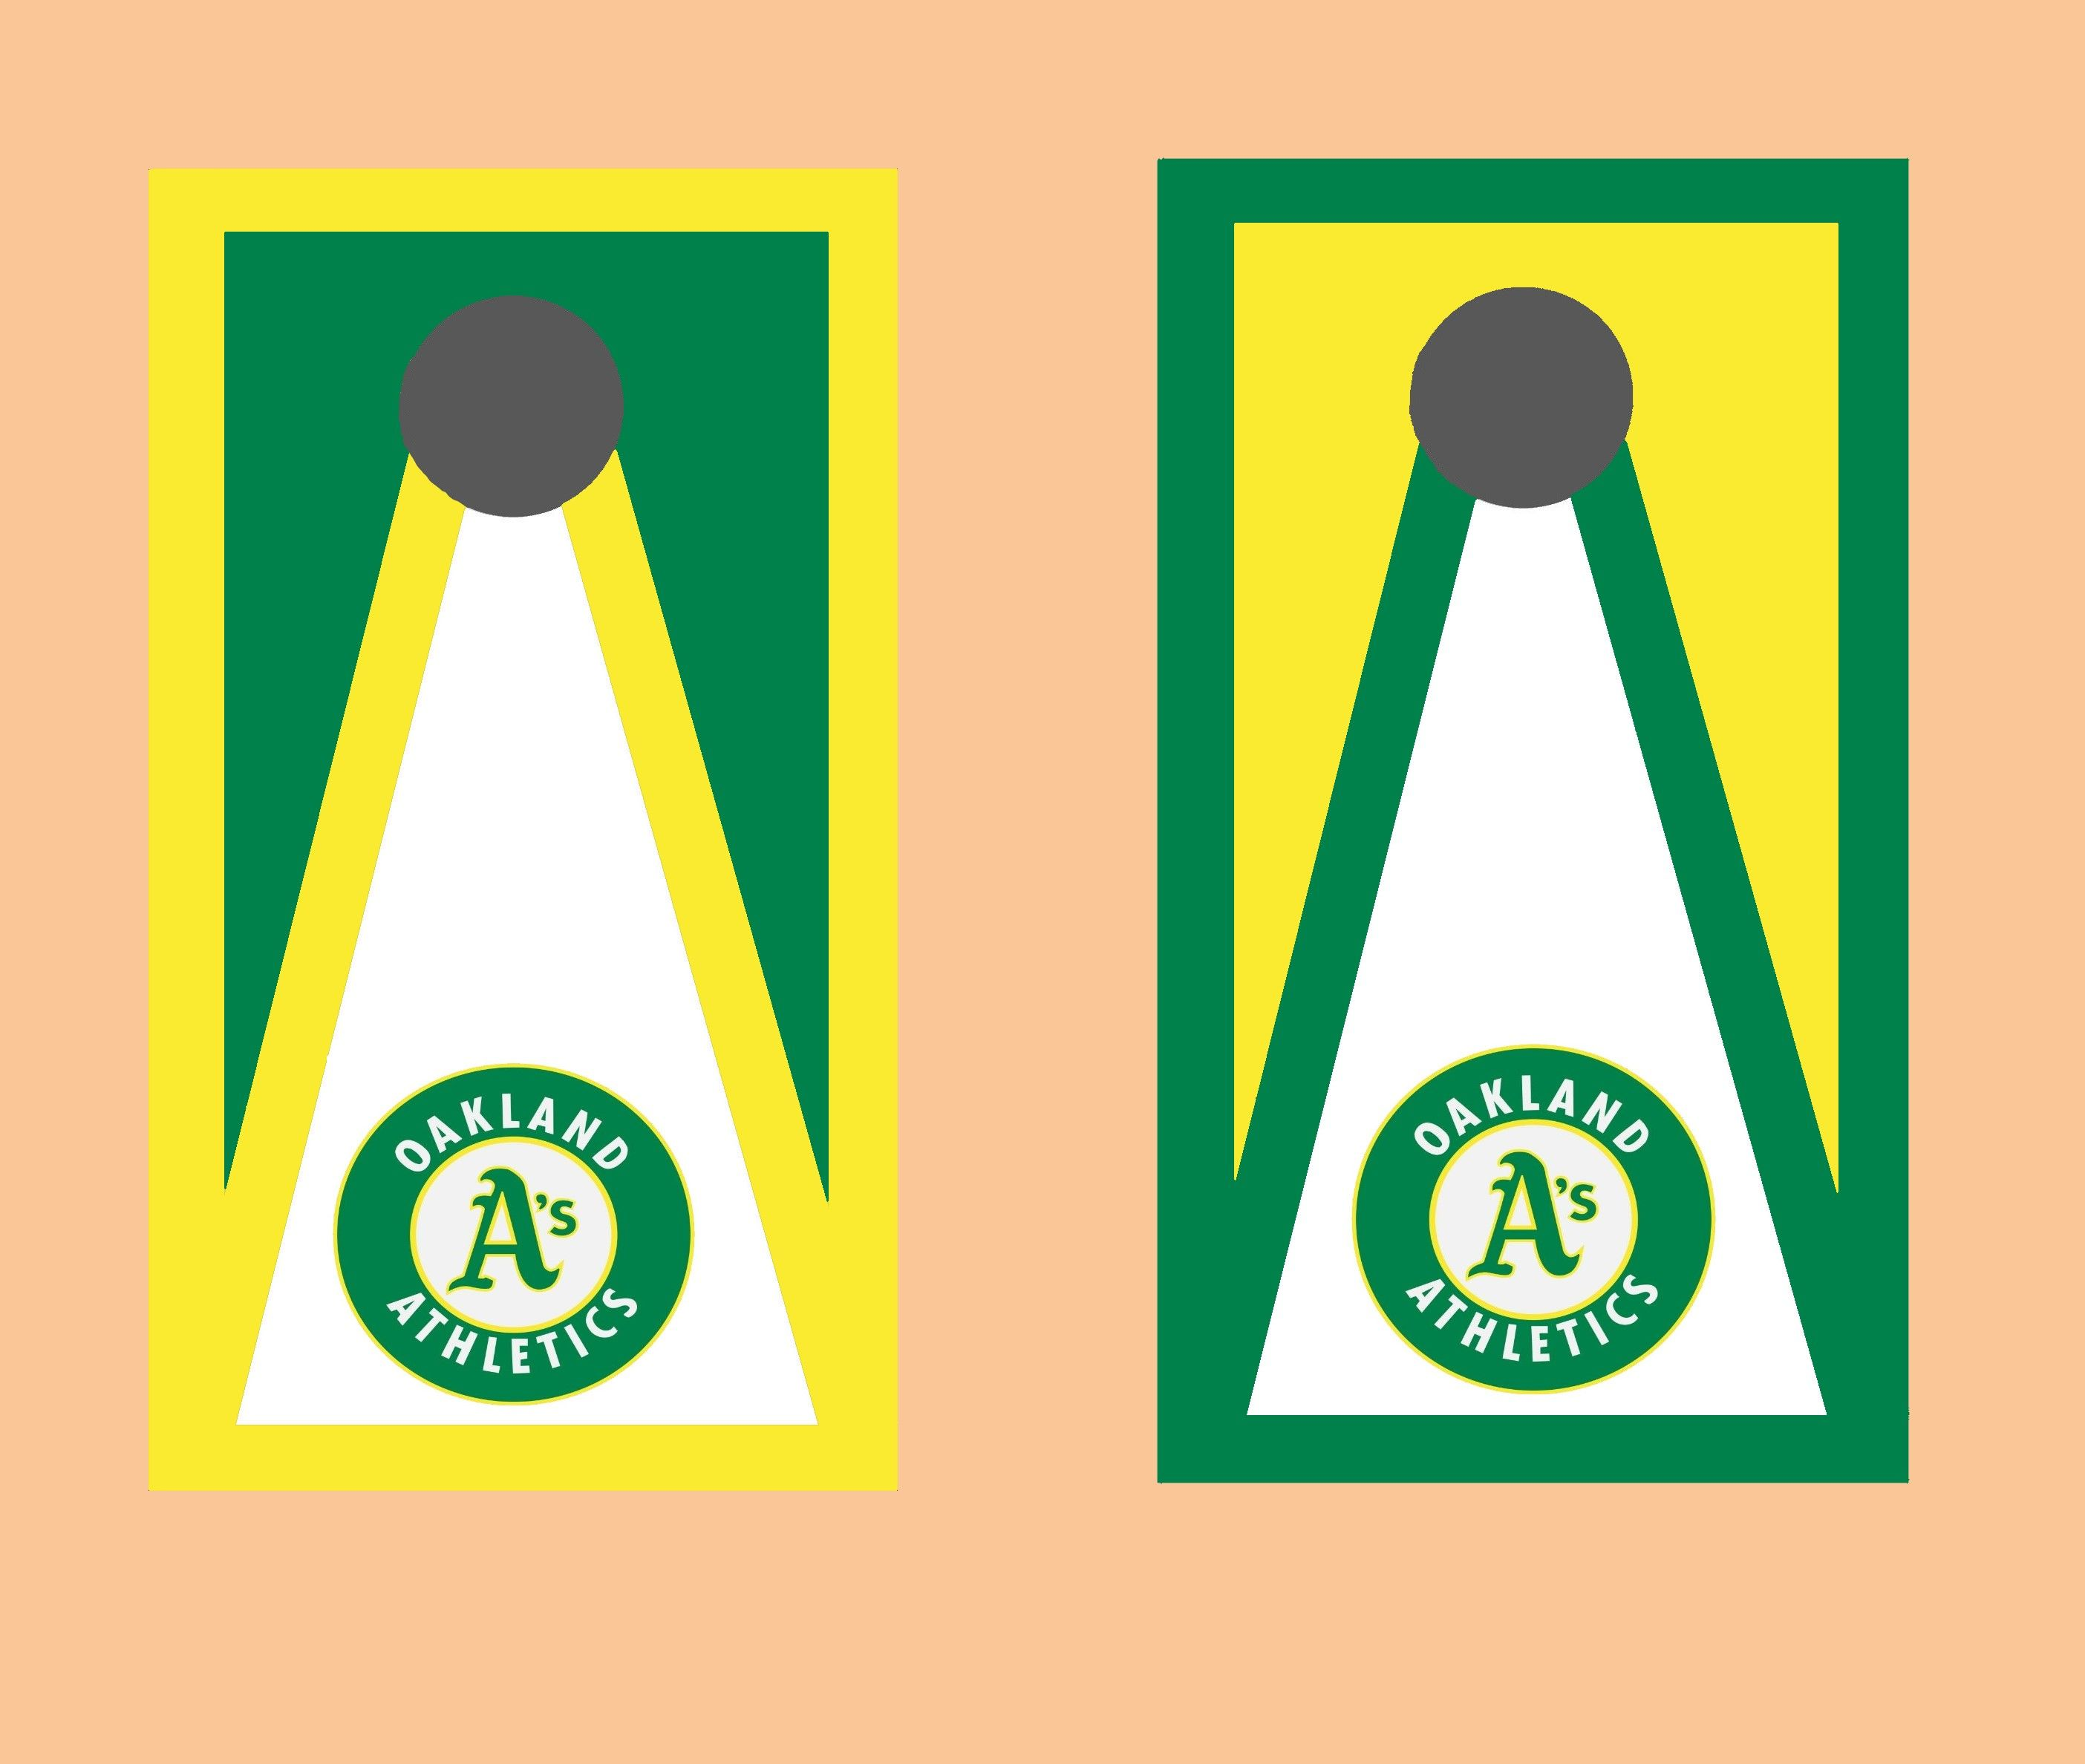 Pin by Mike Strella on My Cornhole Creations Oakland a's